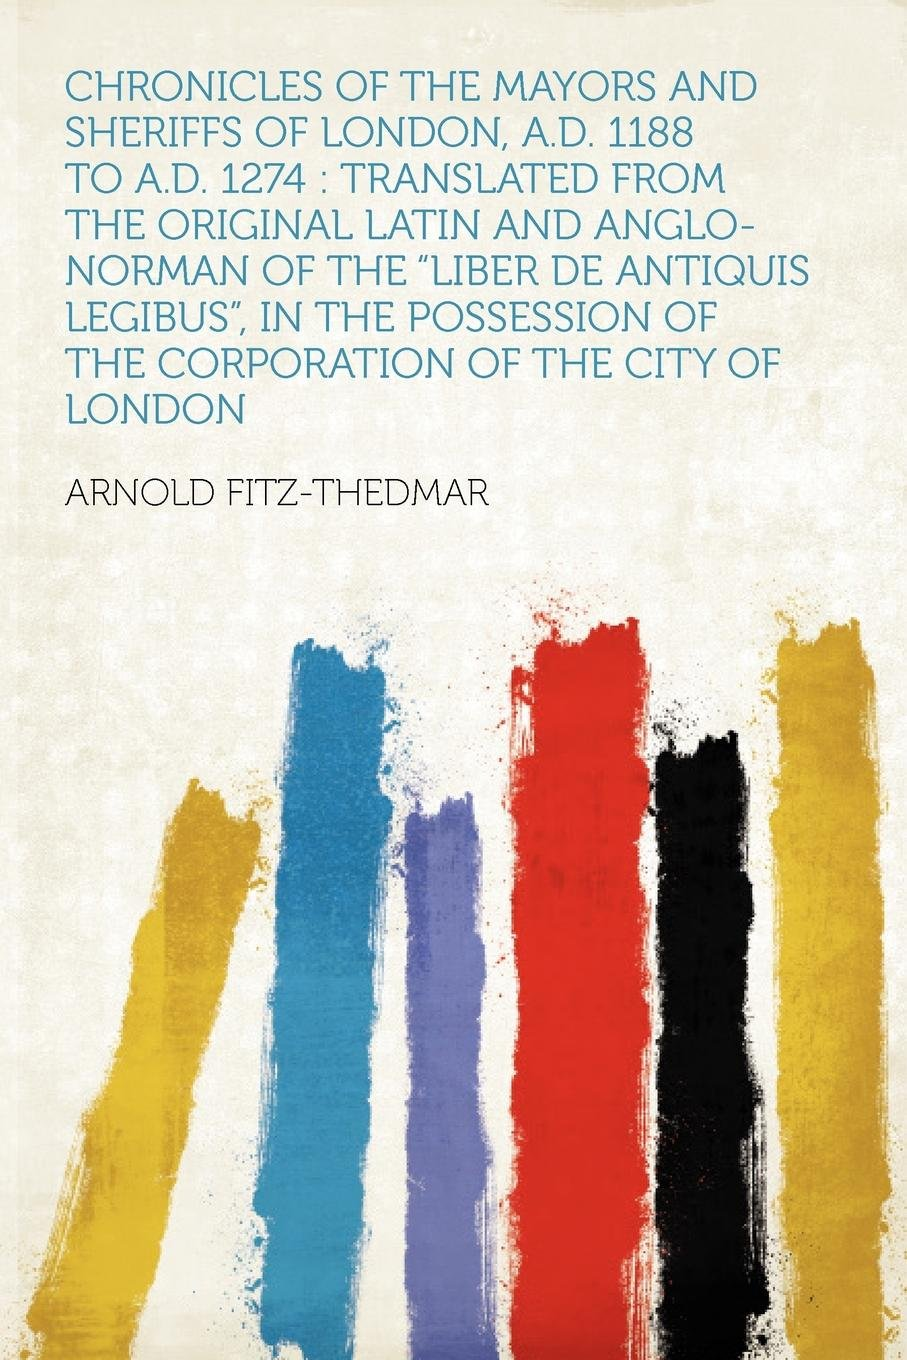 Chronicles of the Mayors and Sheriffs of London, A.D. 1188 to A.D. 1274: Translated from the Original Latin and Anglo-Norman of the Liber de Antiquis PDF